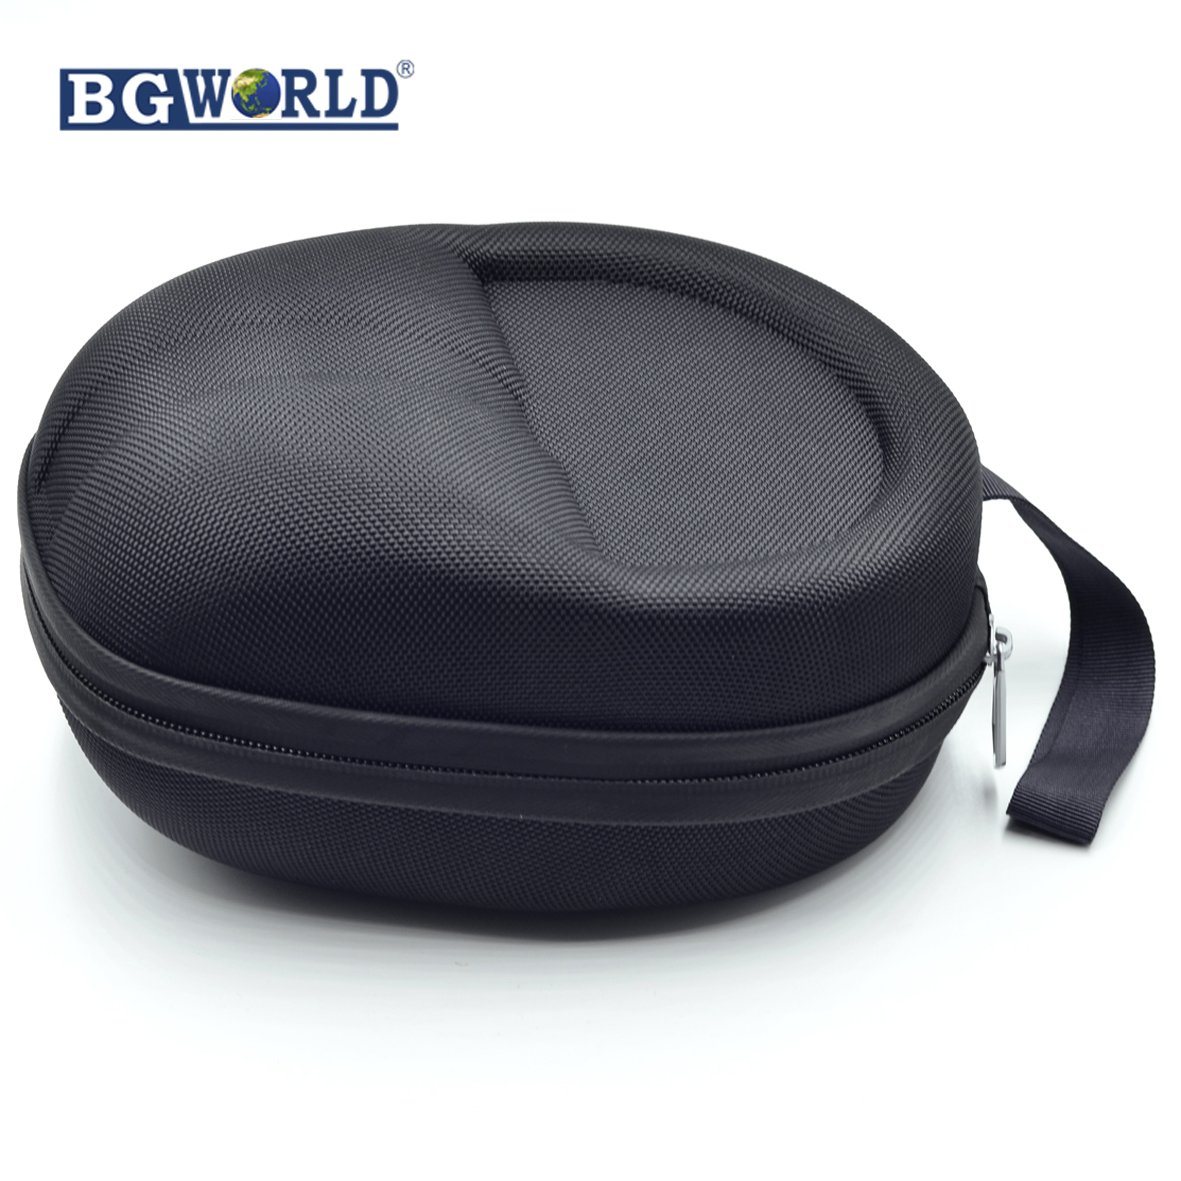 Bgworld Generic Headphone Case Box Sony Mdr 7506 V6